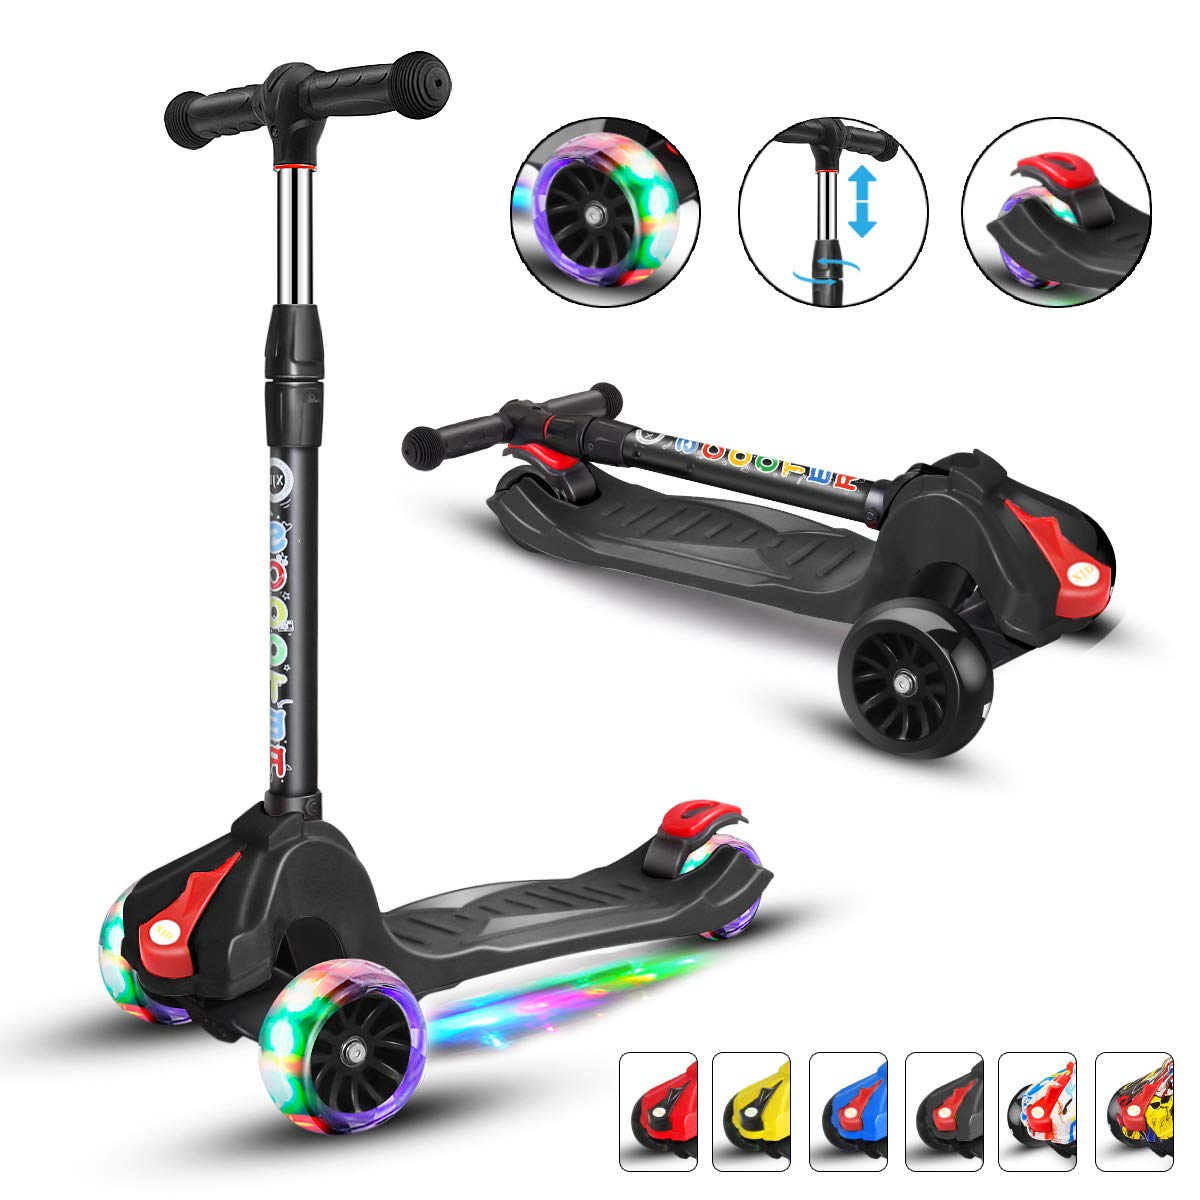 XJD Scooters for Kids Toddler Scooters Adjustable Height Extra-Wide 3 Wheels Boys Girls 100% Assembled Light Up Wheels Children from 2 to 14 Year-Old (Black) by XJD